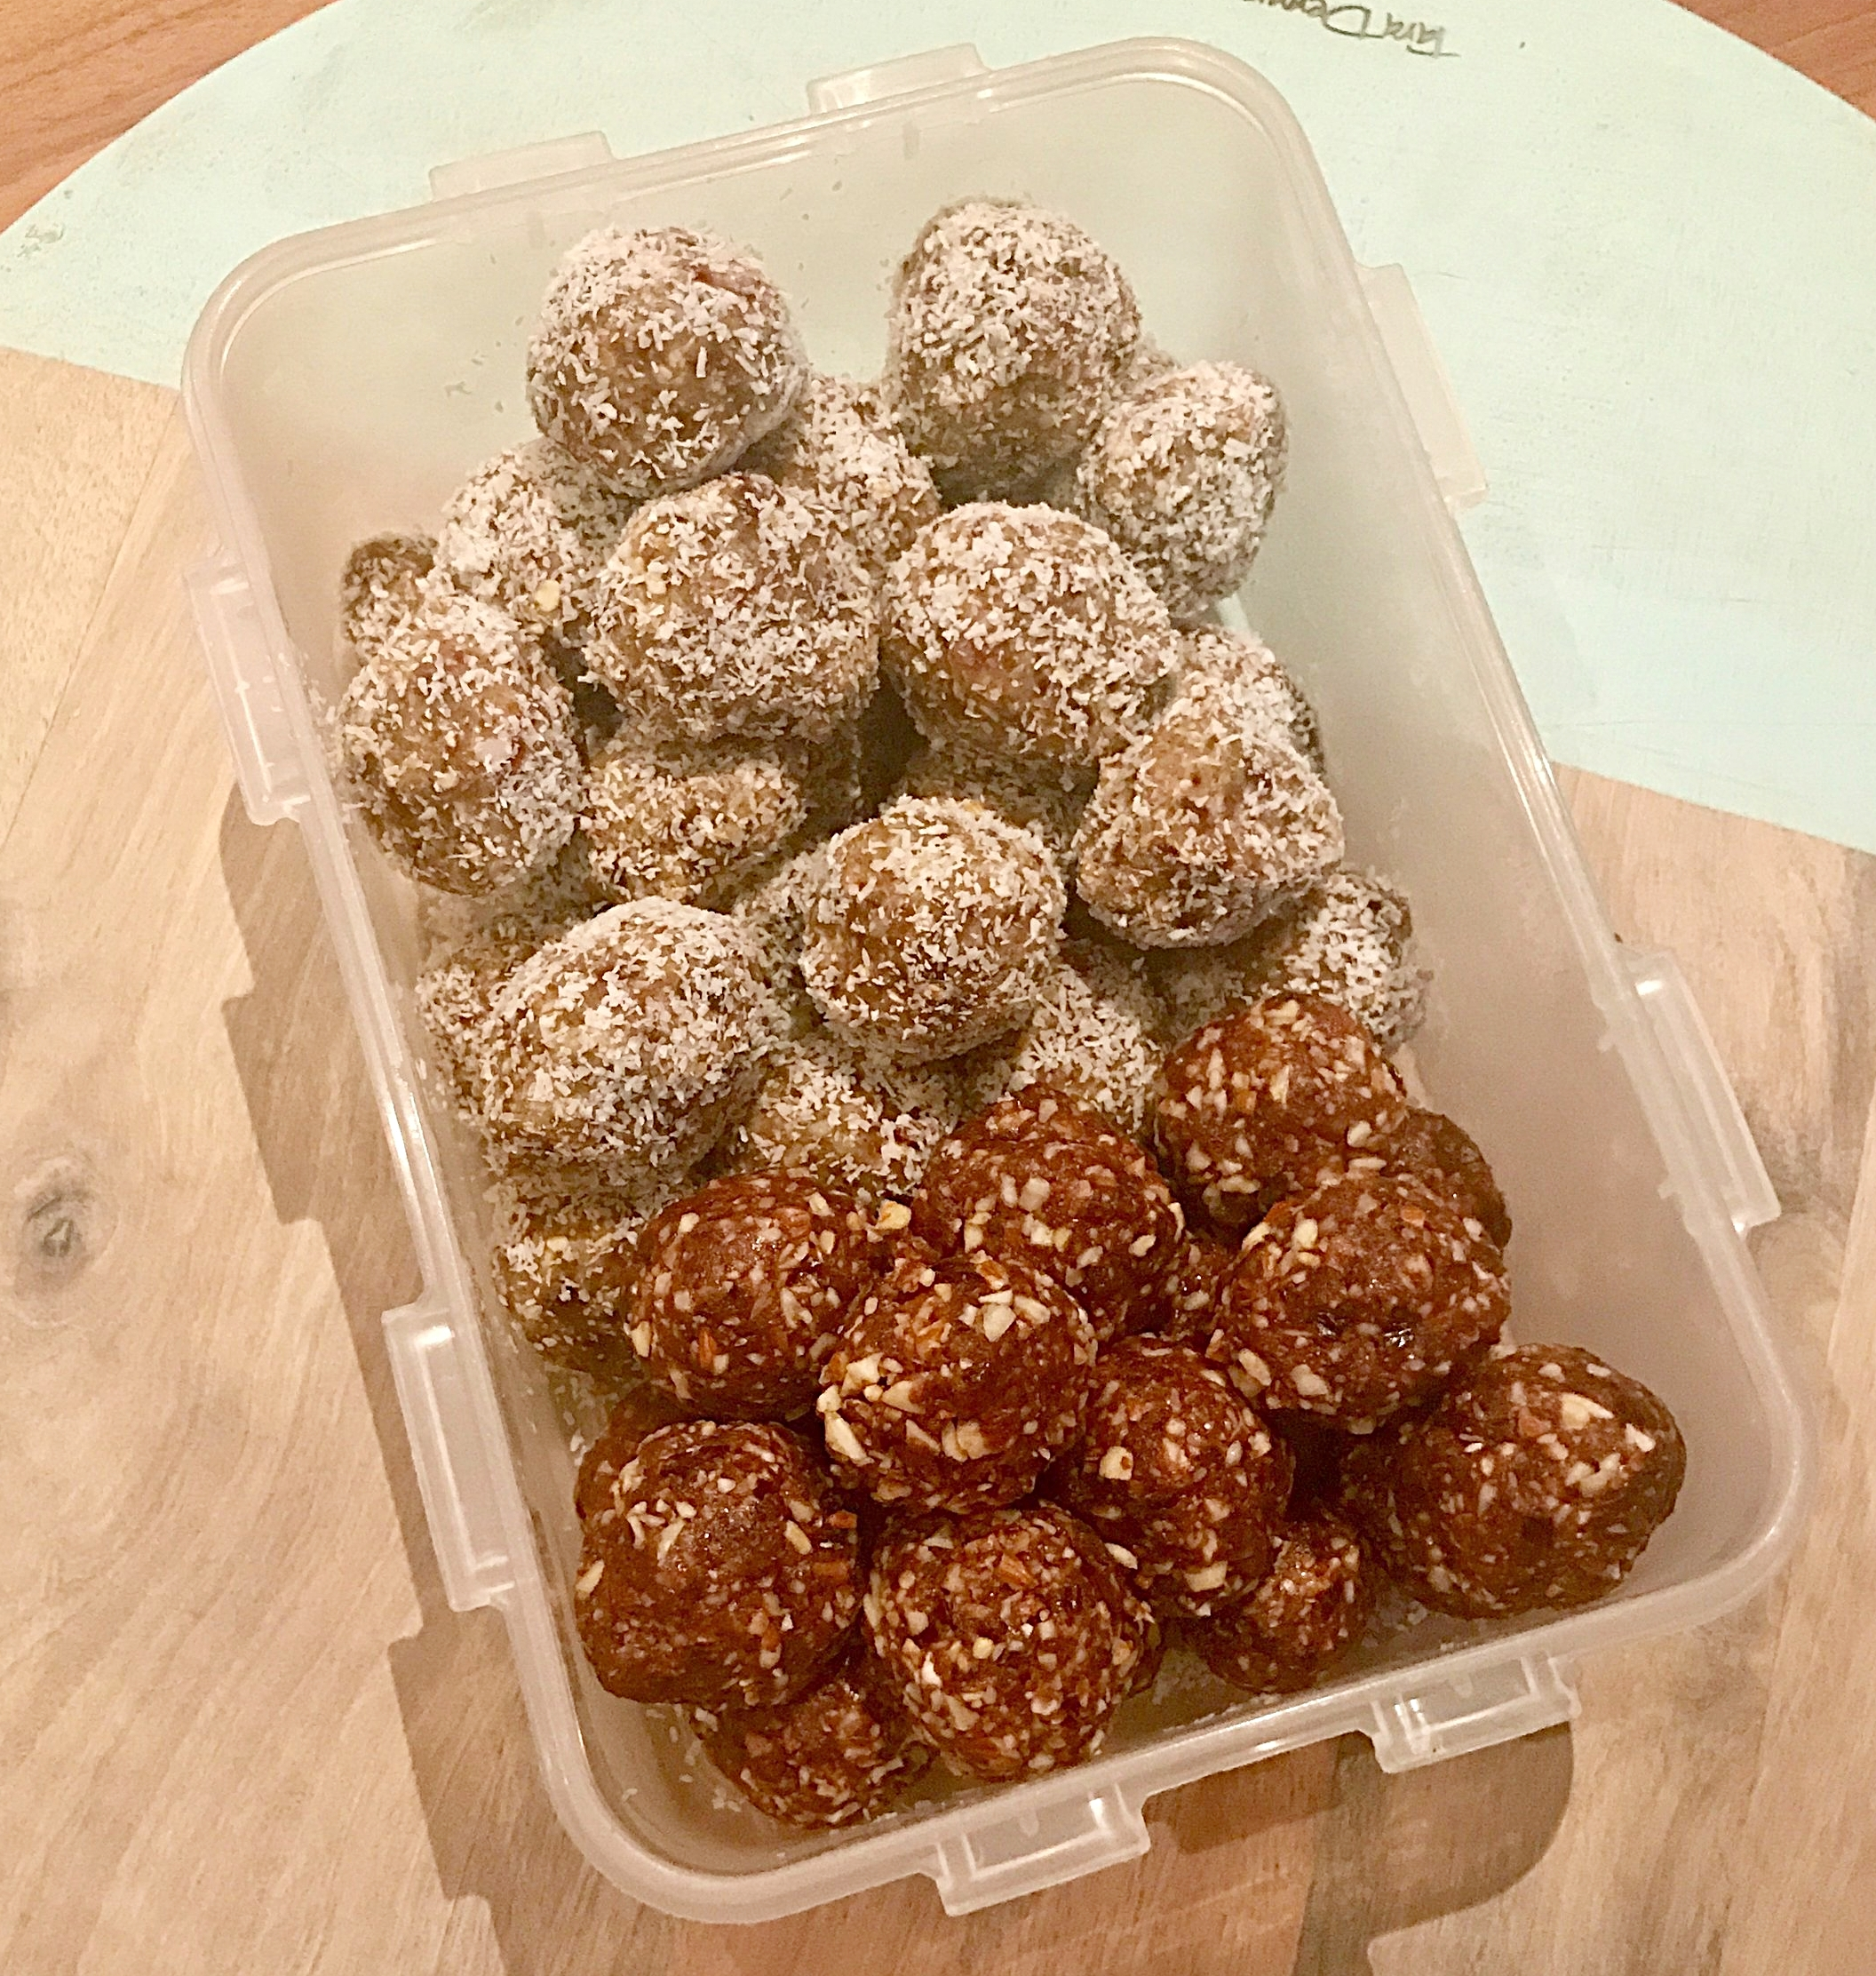 Bliss Balls pictured here with Energy Balls (rolled in coconut) from recipe previous post.